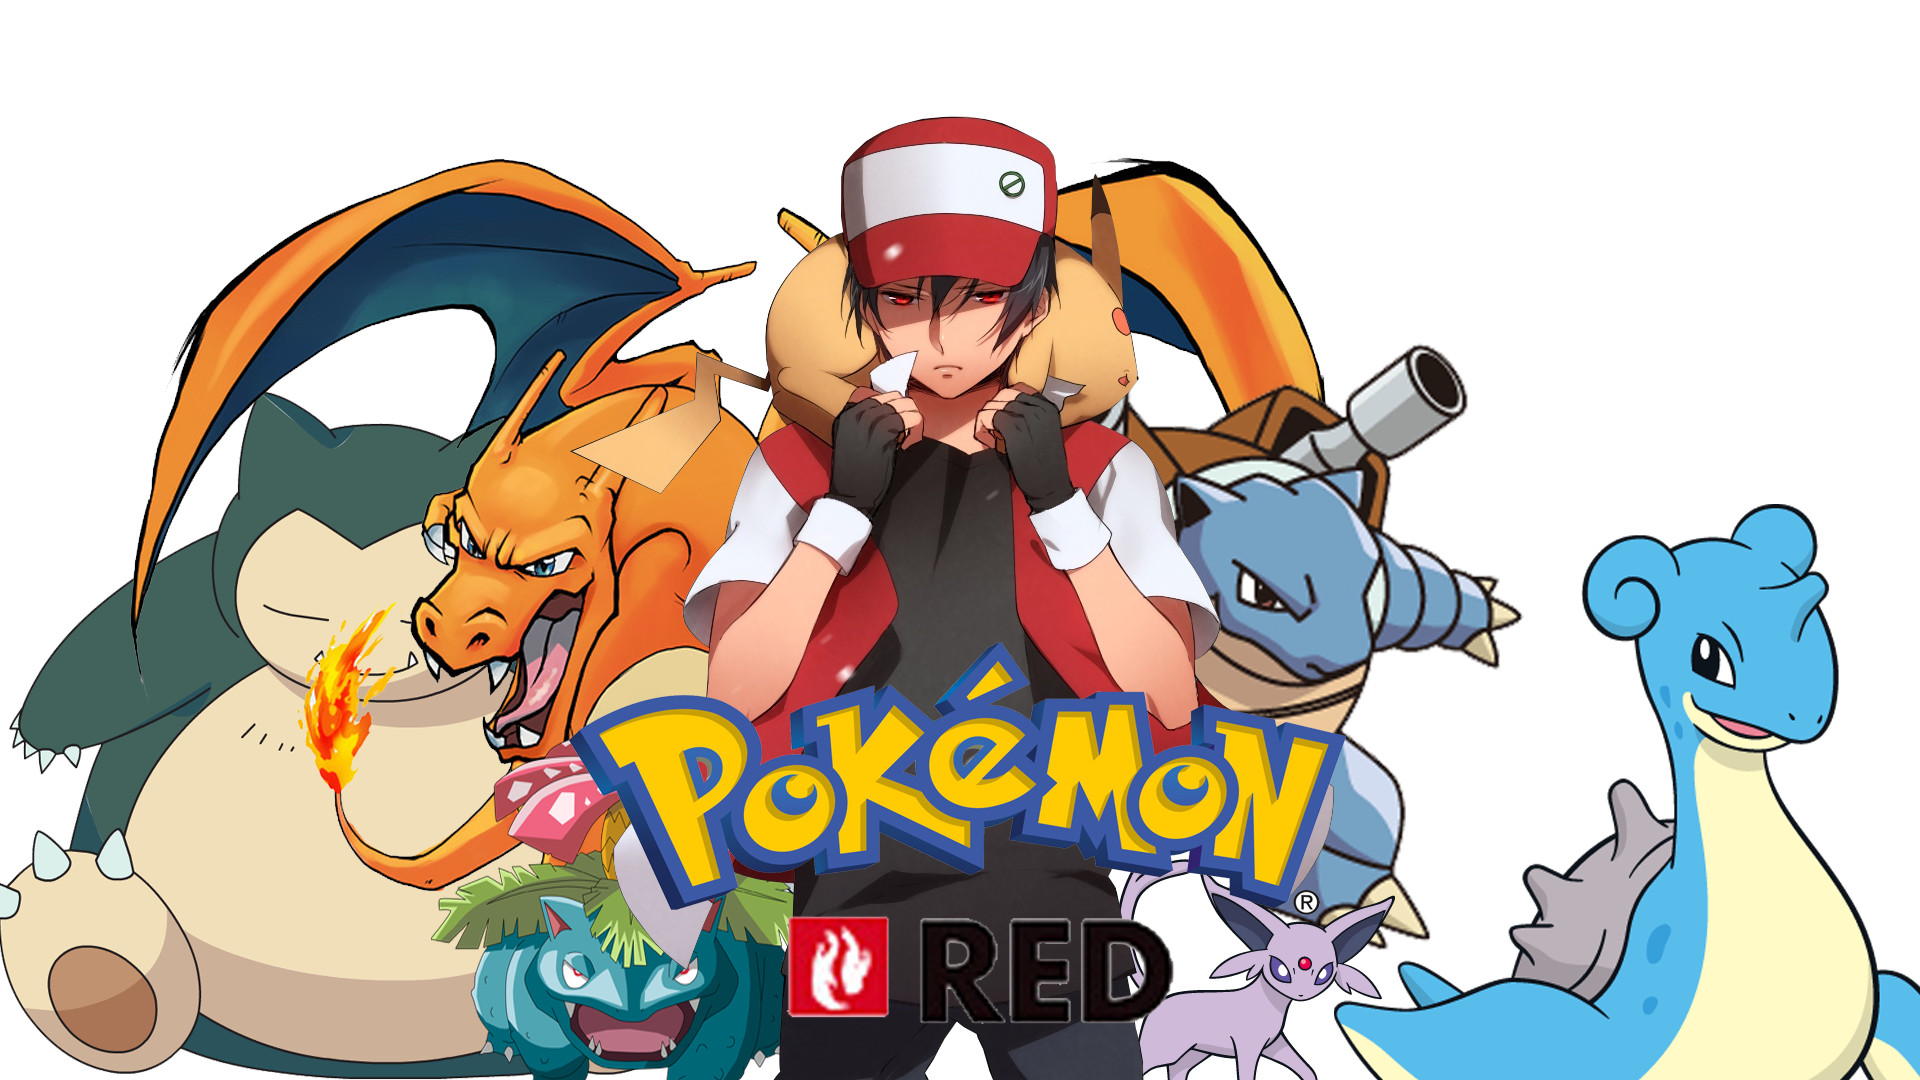 1920x1080 Pokemon Red Wallpaper Widescreen On Wallpaper 1080p HD